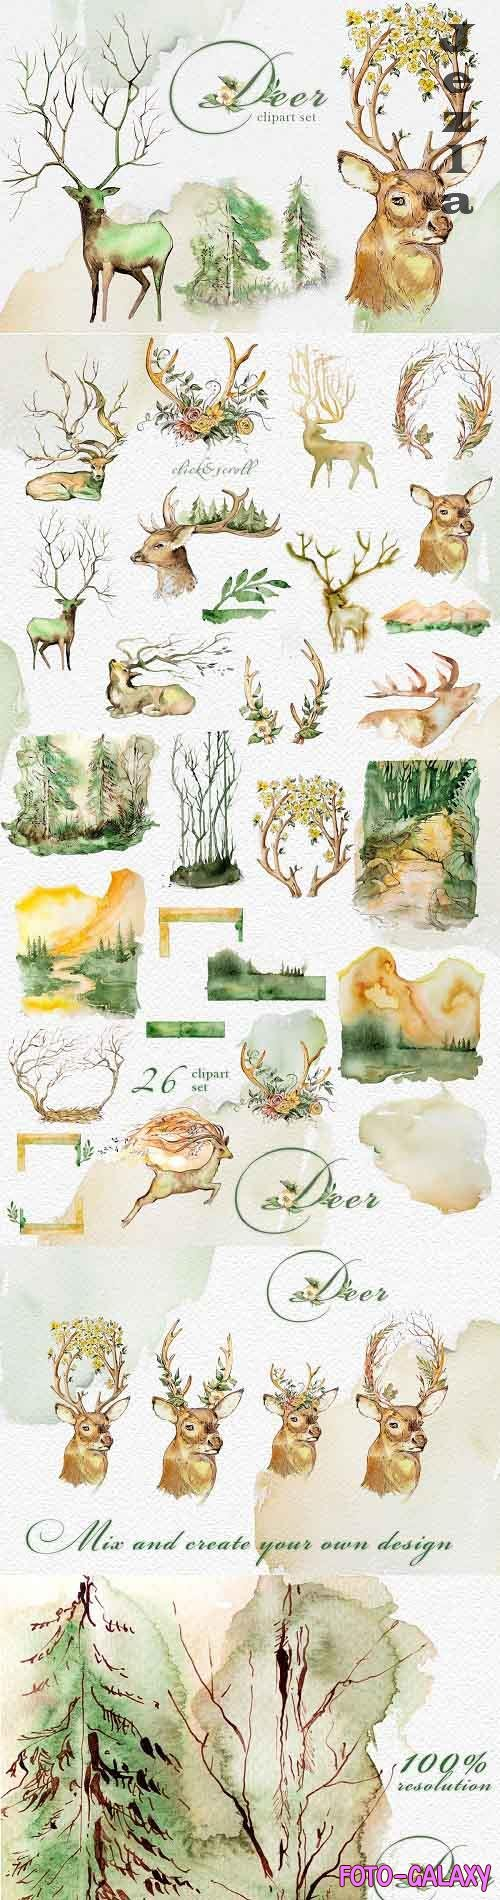 Watercolor Deer Clipart Set - 4328234